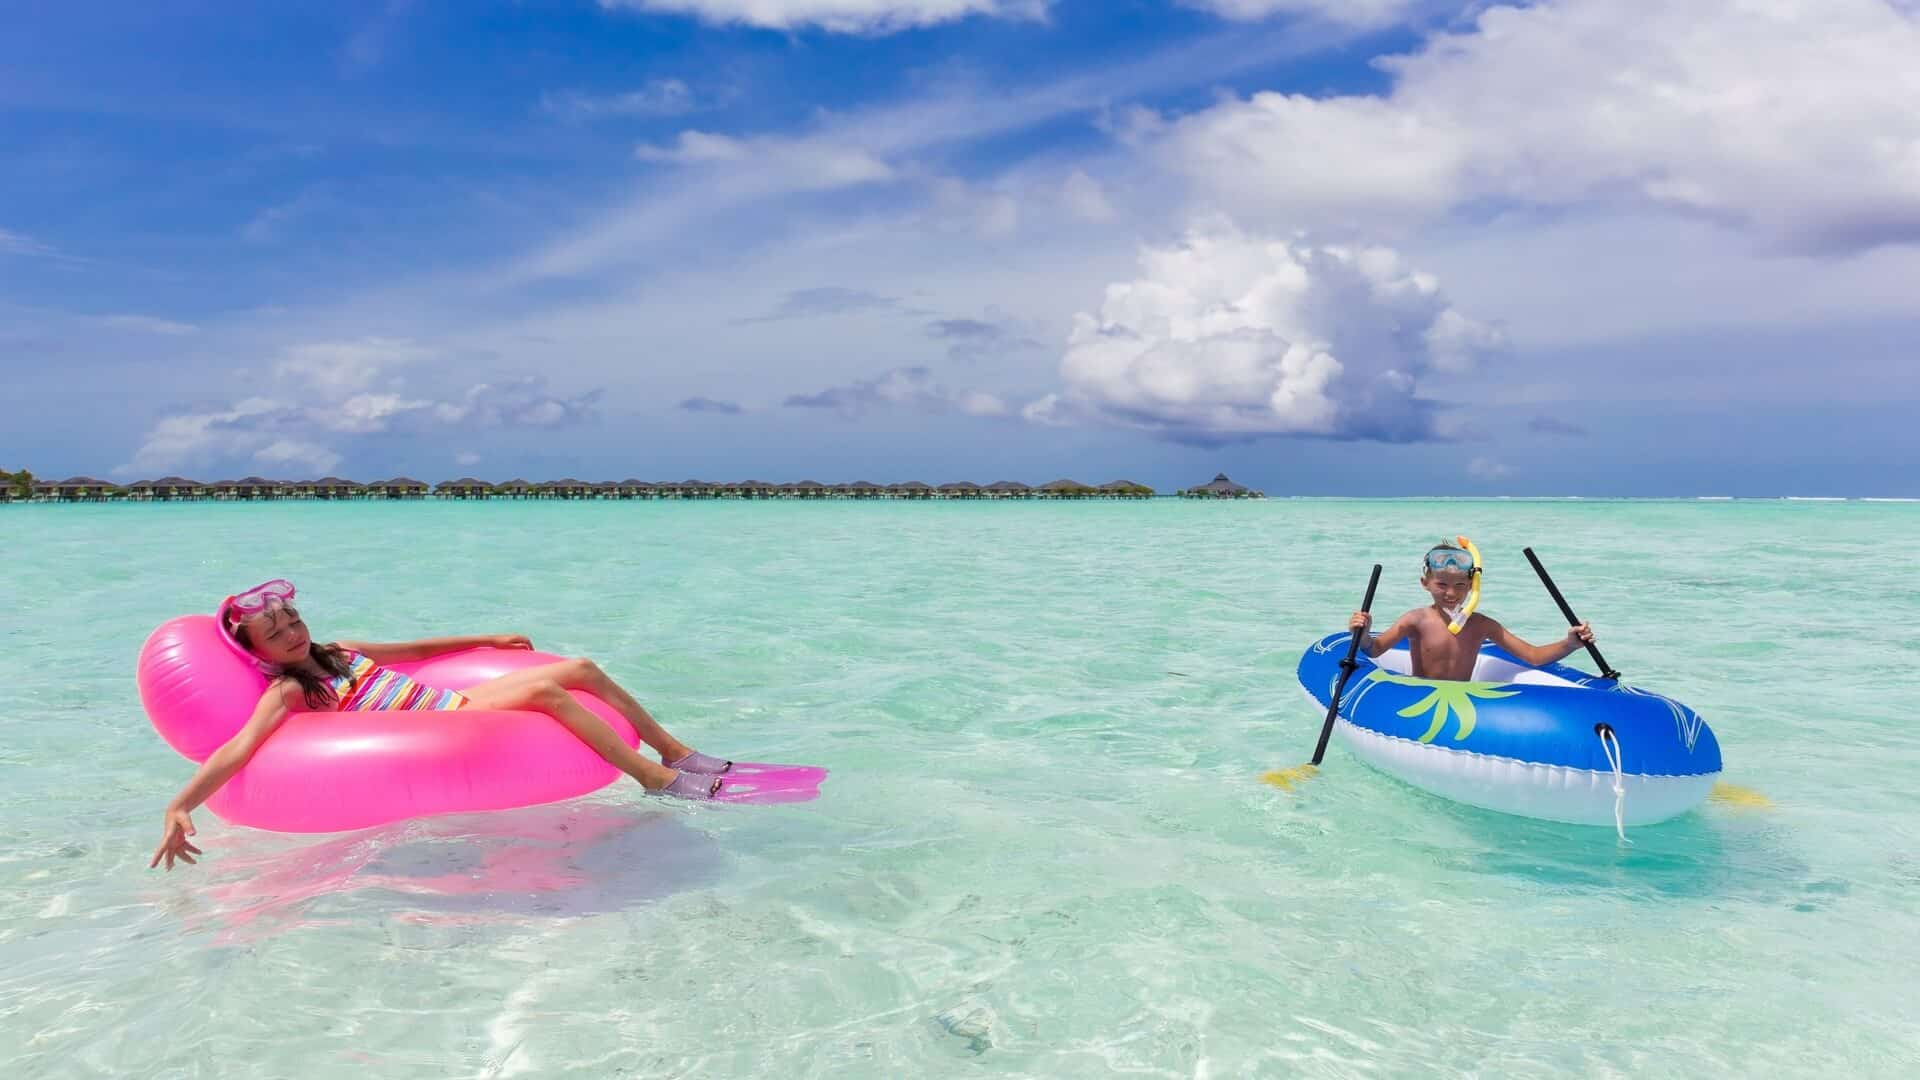 Teaching a child to the water in the Maldives